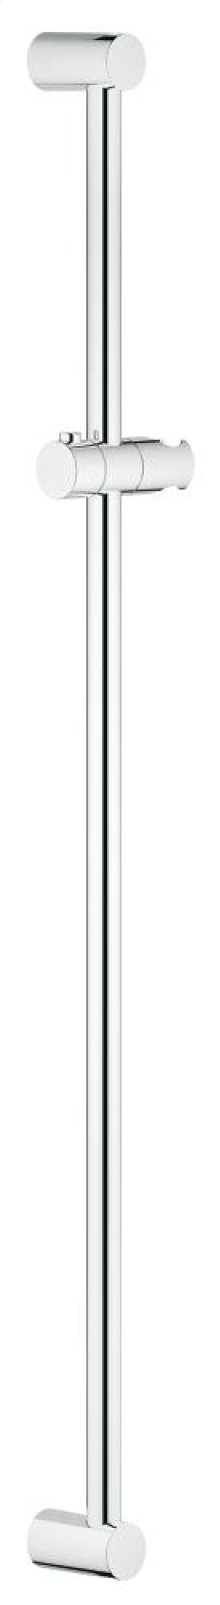 "New Tempesta Cosmopolitan 36"" Shower Bar"